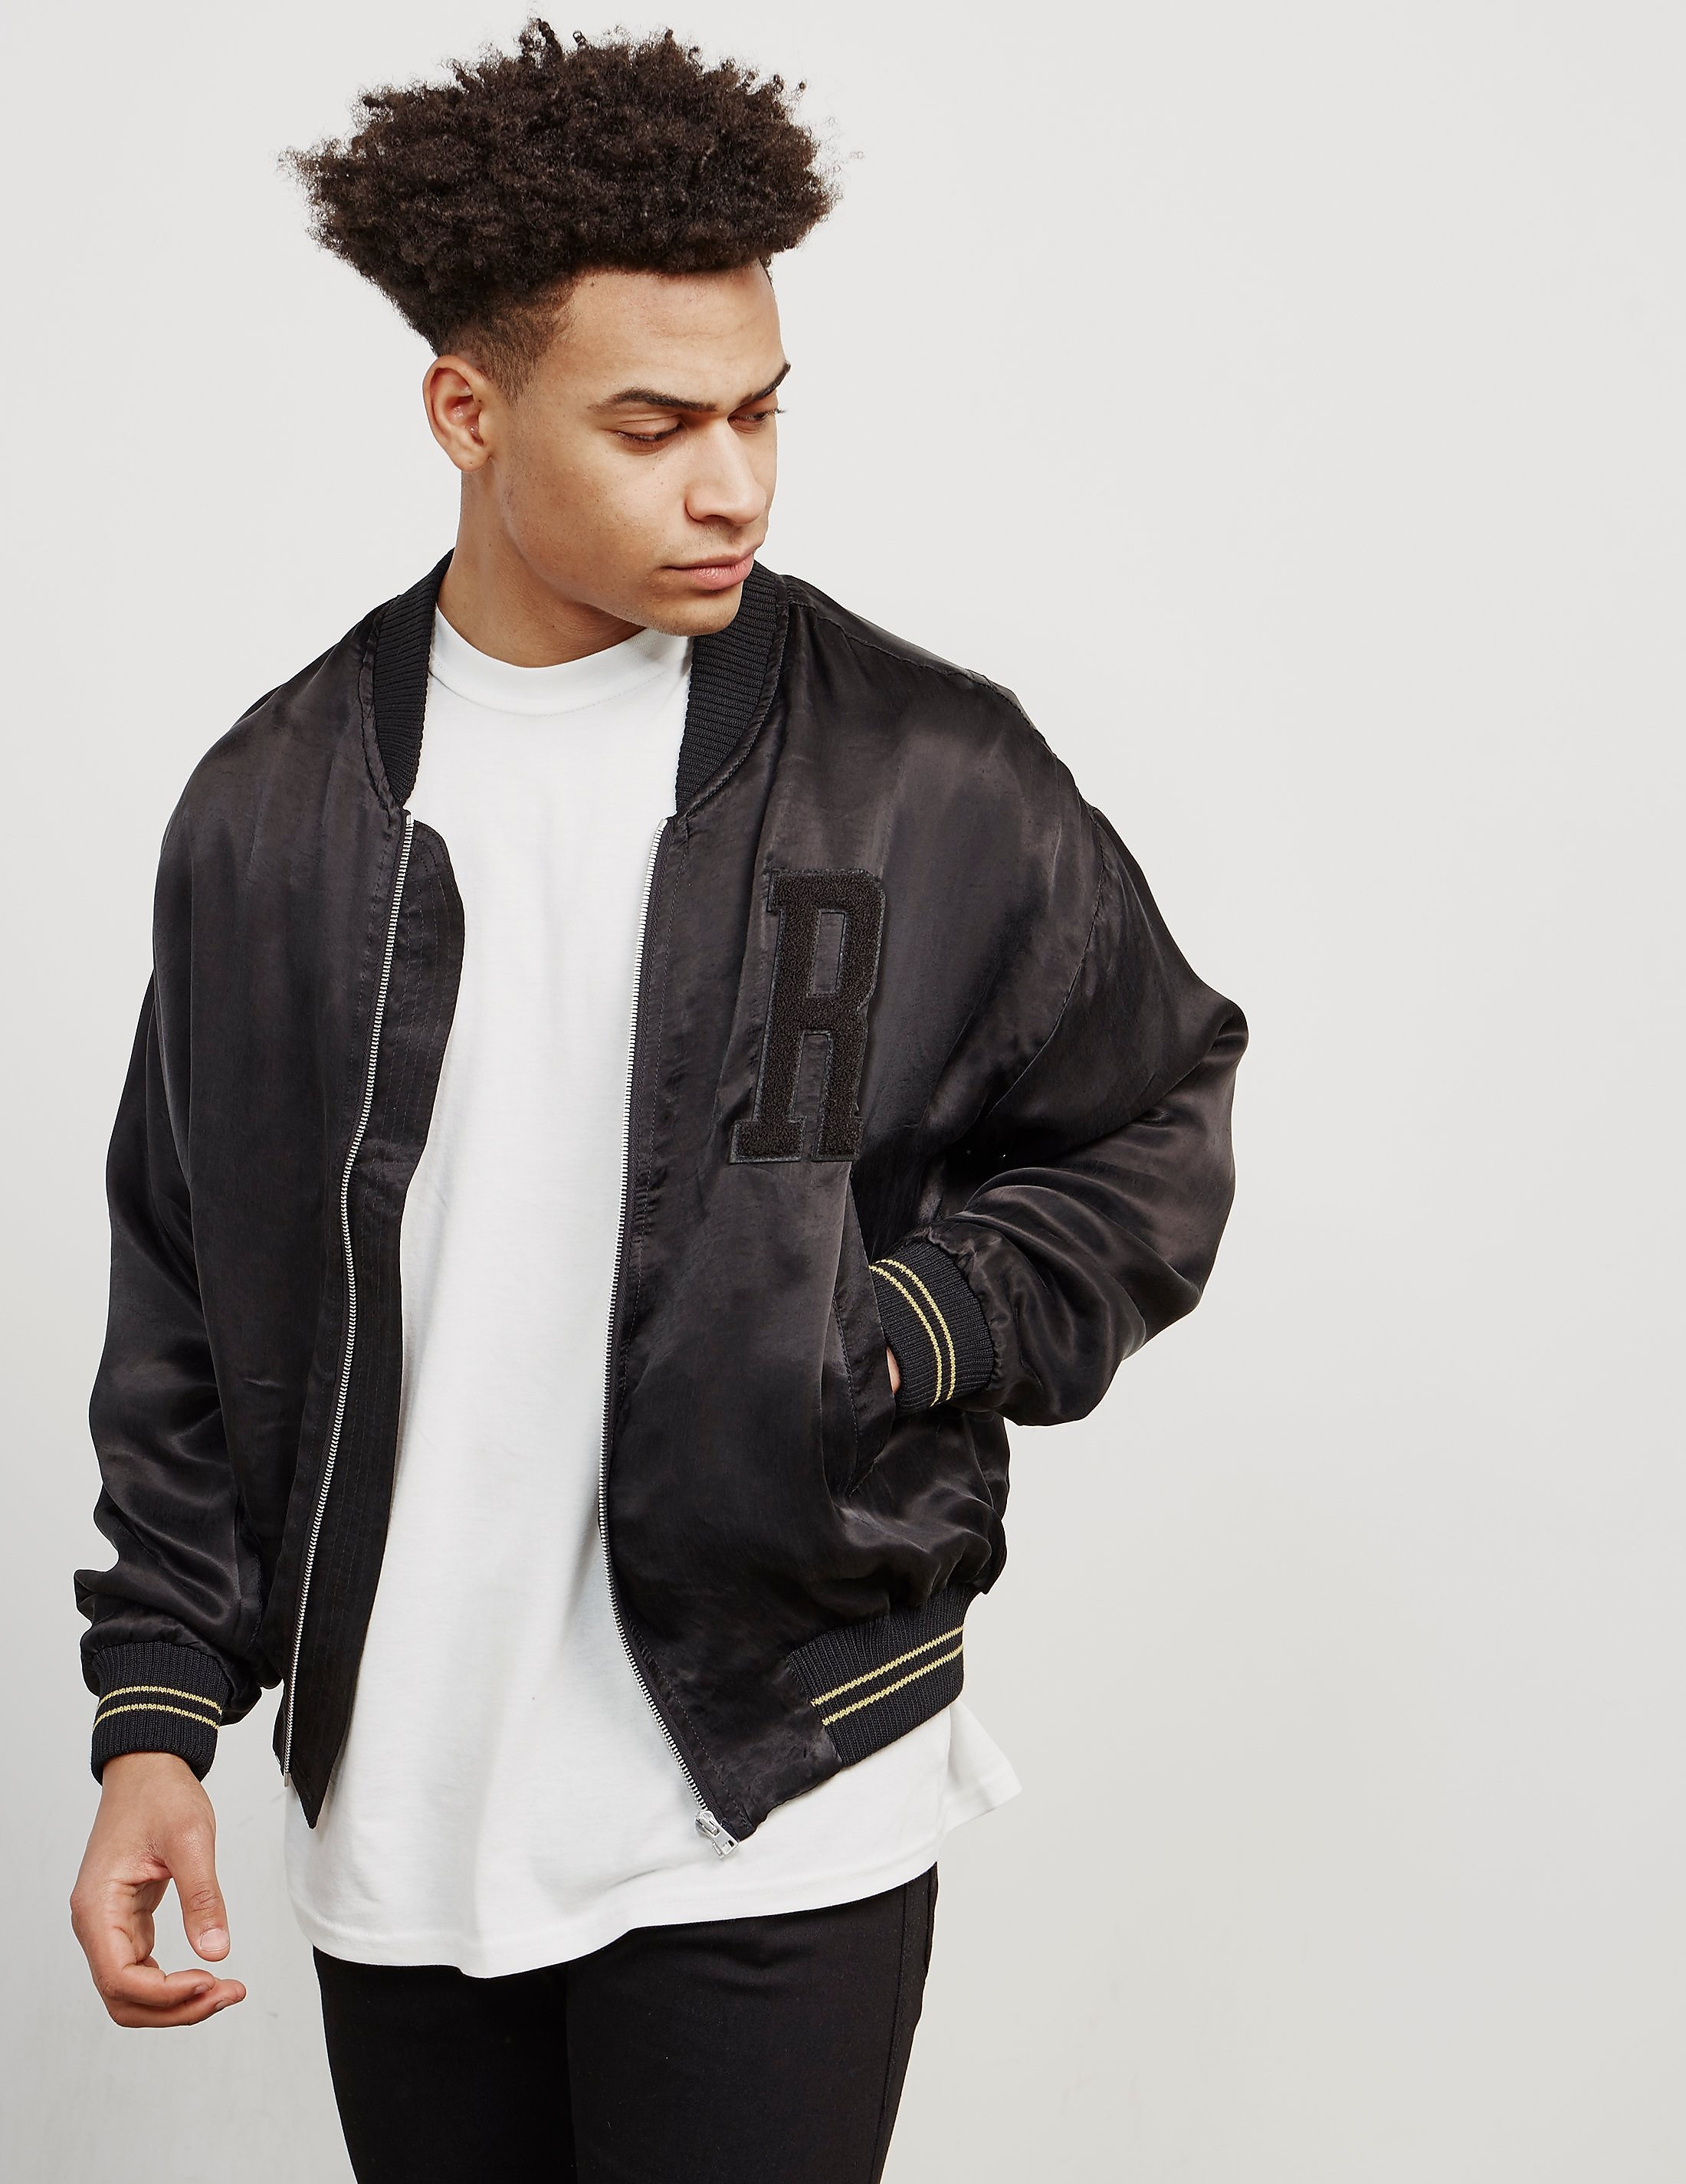 Represent Satin Bomber Jacket - Online Exclusive